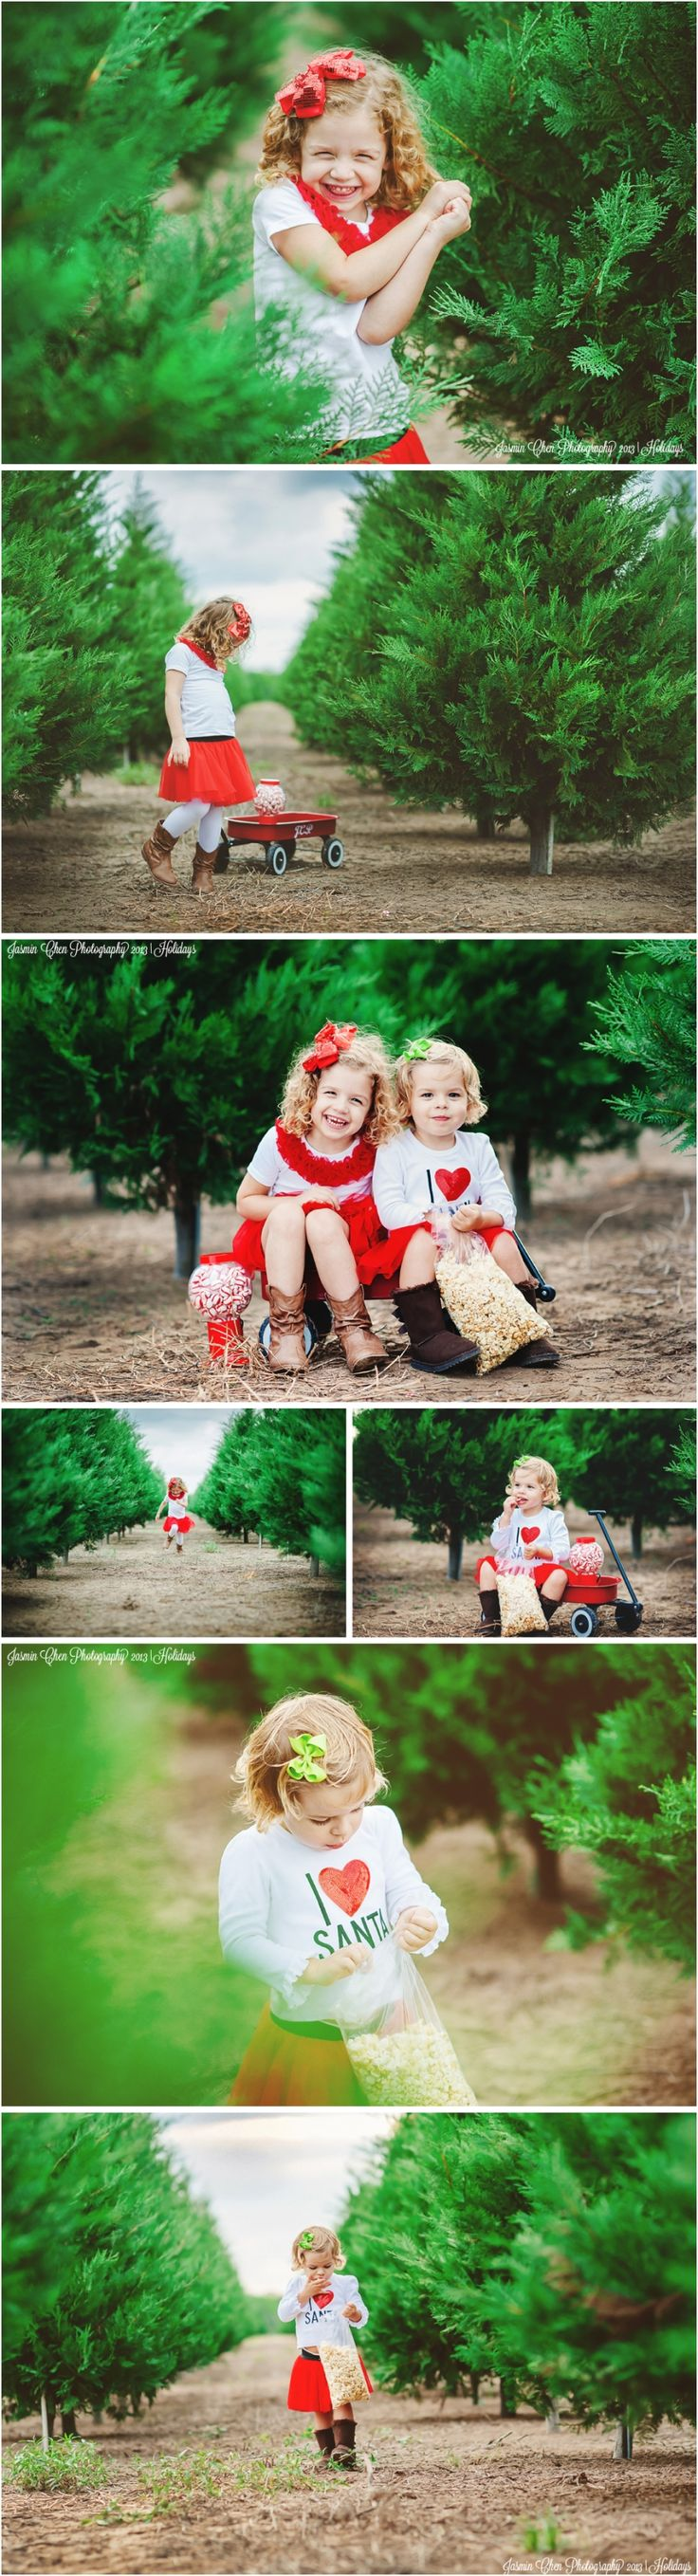 Christmas Mini Sessions | Jasmin Chen Photography | Holidays 2013